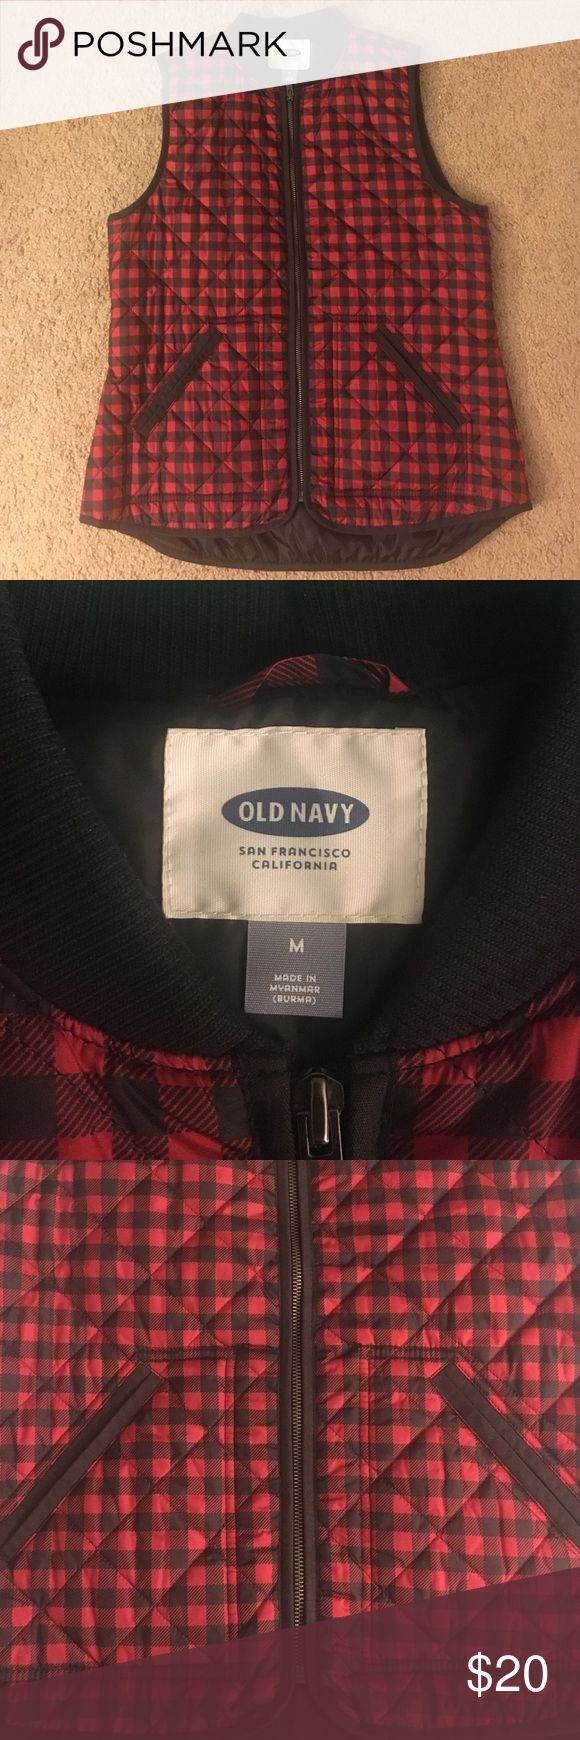 Medium Old navy red gingham vest This vest is great for the fall /winter season! In great condition, only worn once ! Vest is too big for me now and would like to sell . Old Navy Jackets & Coats Vests